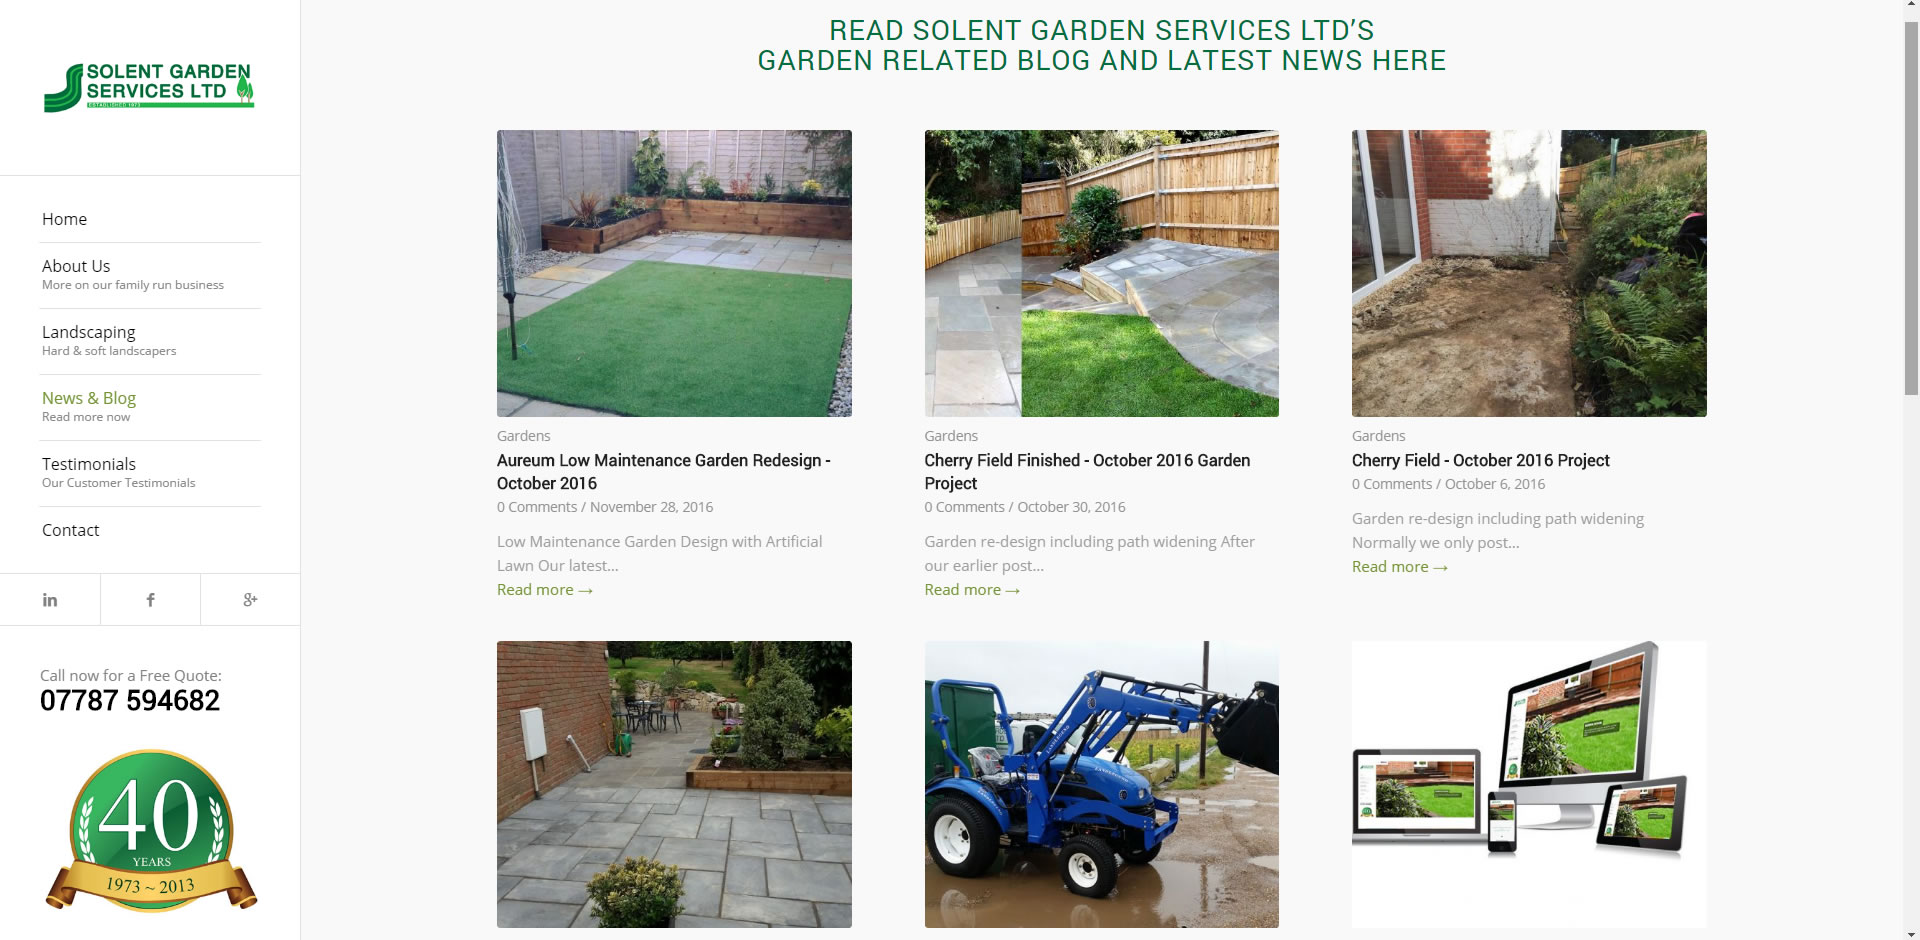 Ongoing Blog and Garden Services News Feed Page